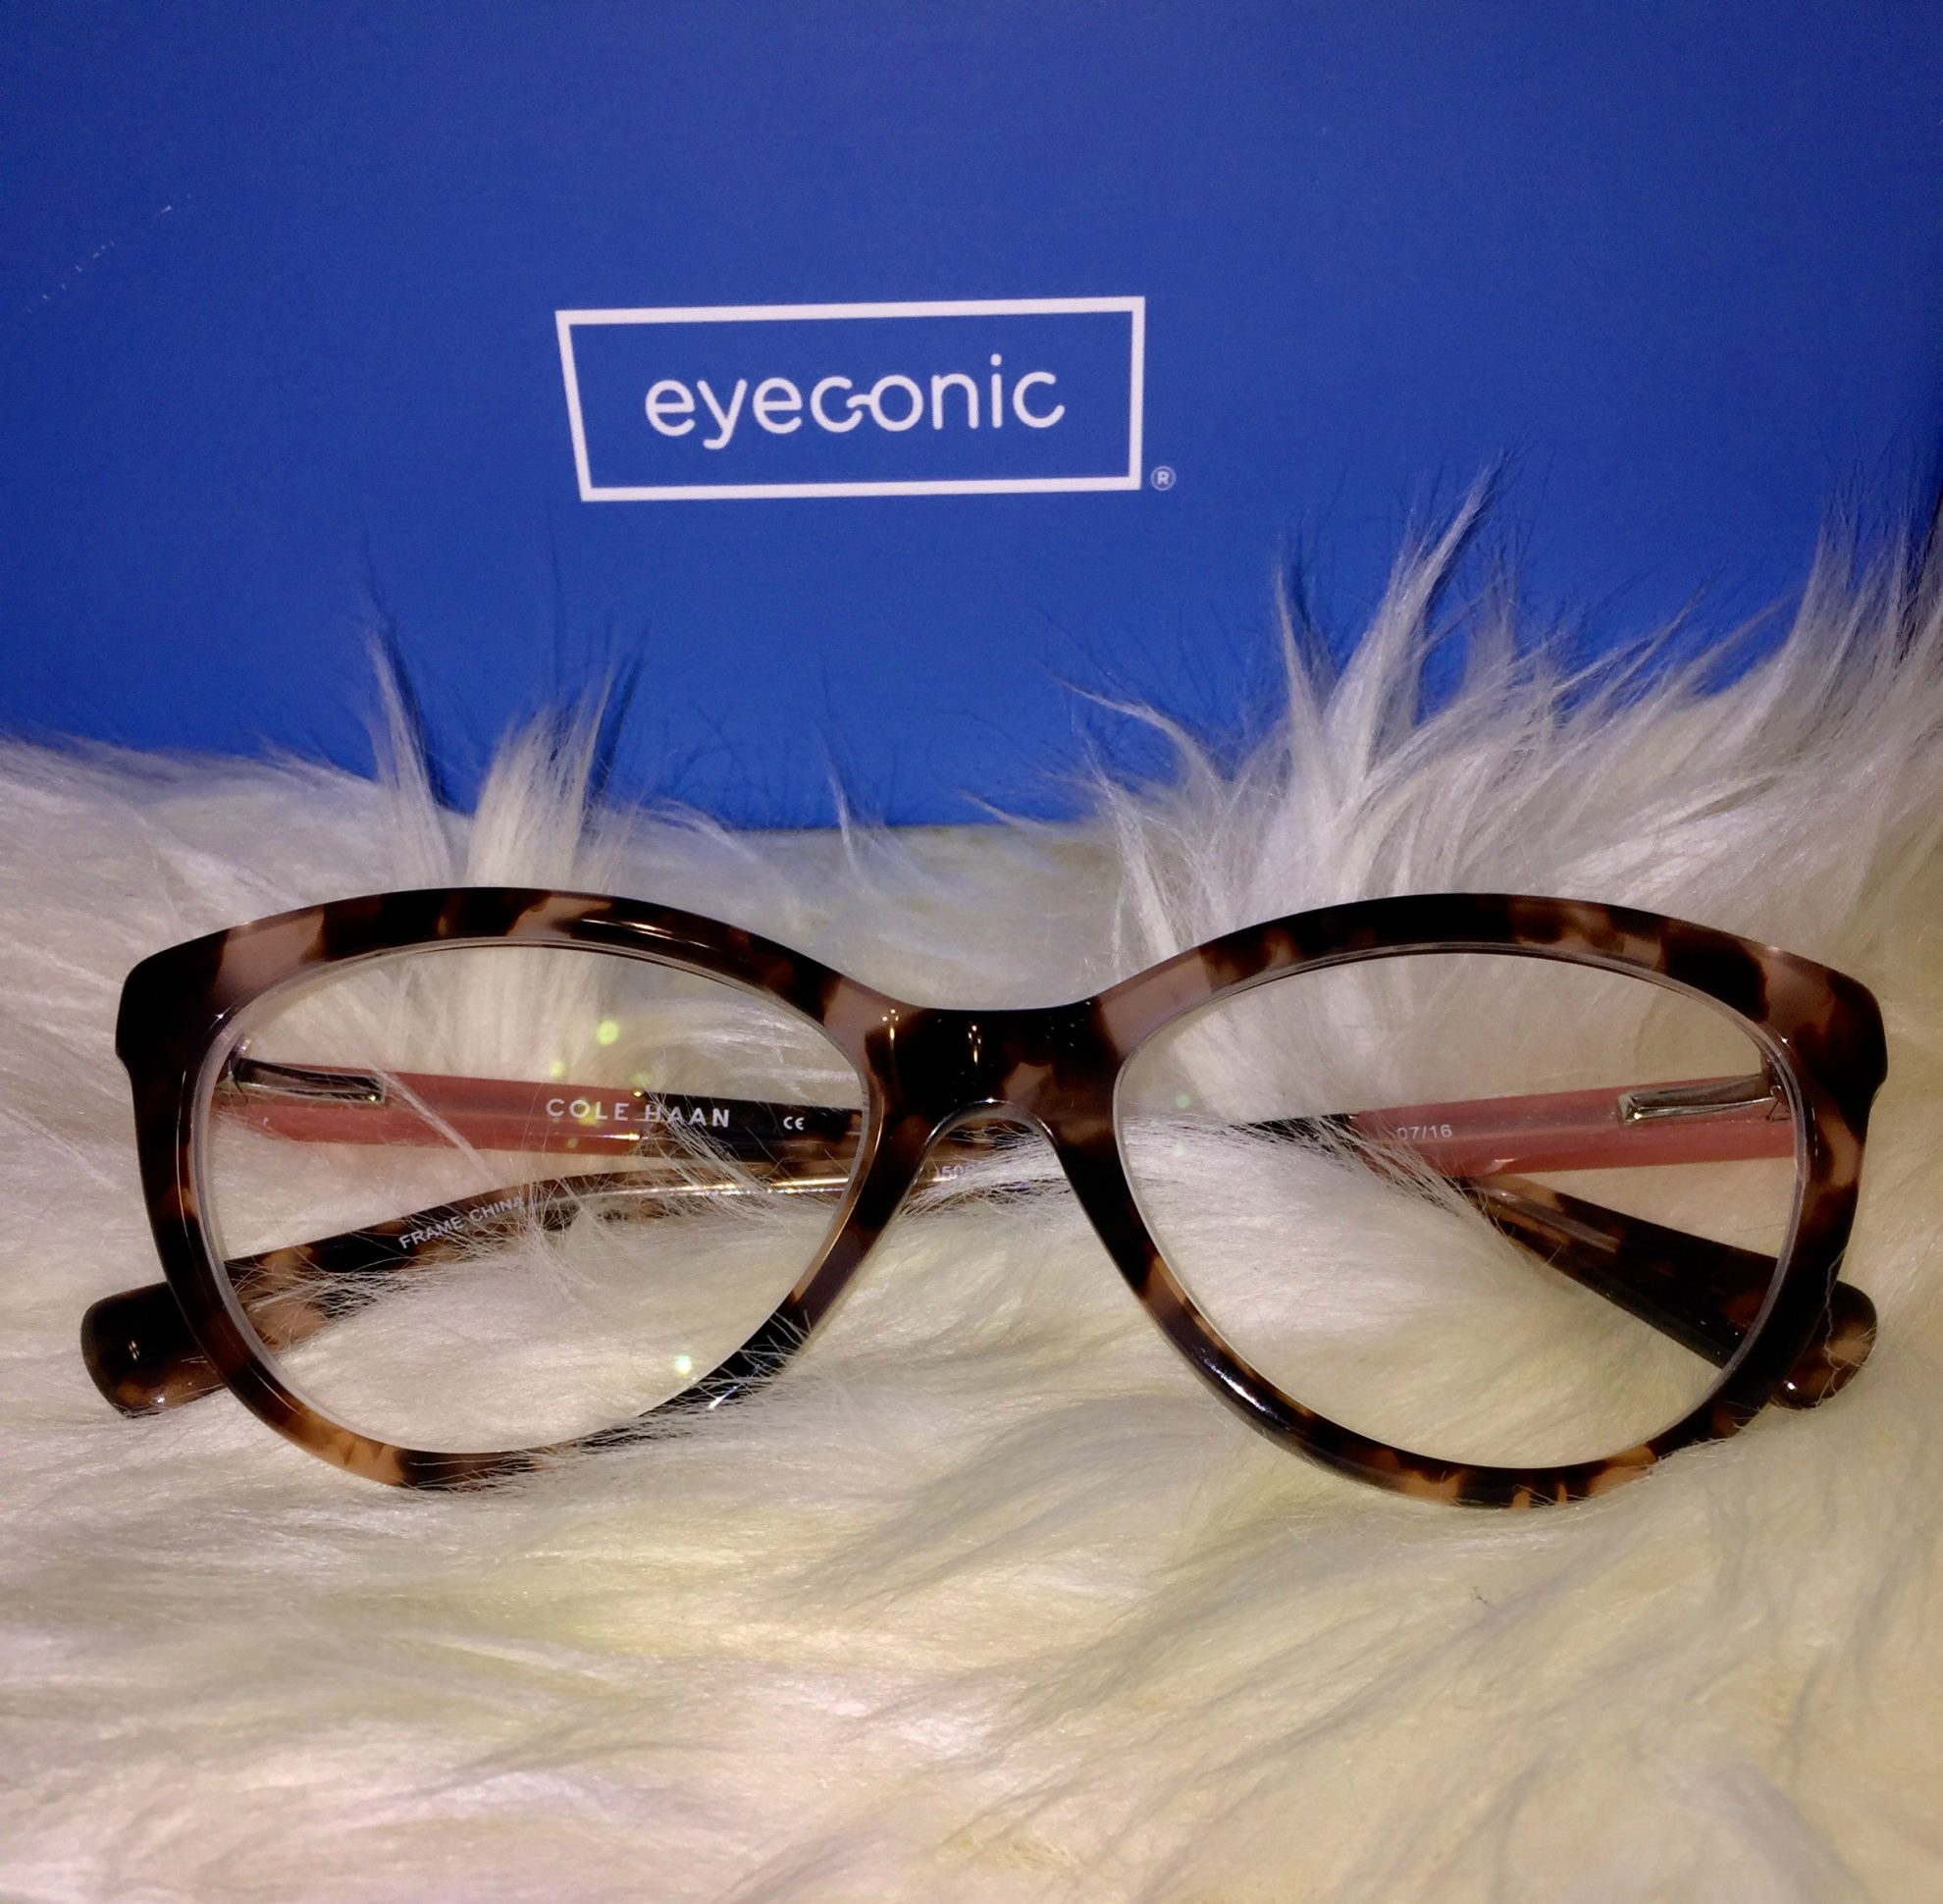 bd46a17c11 EYEConic.com is the BEST Way to Shop Eyewear online  LookEyeConic